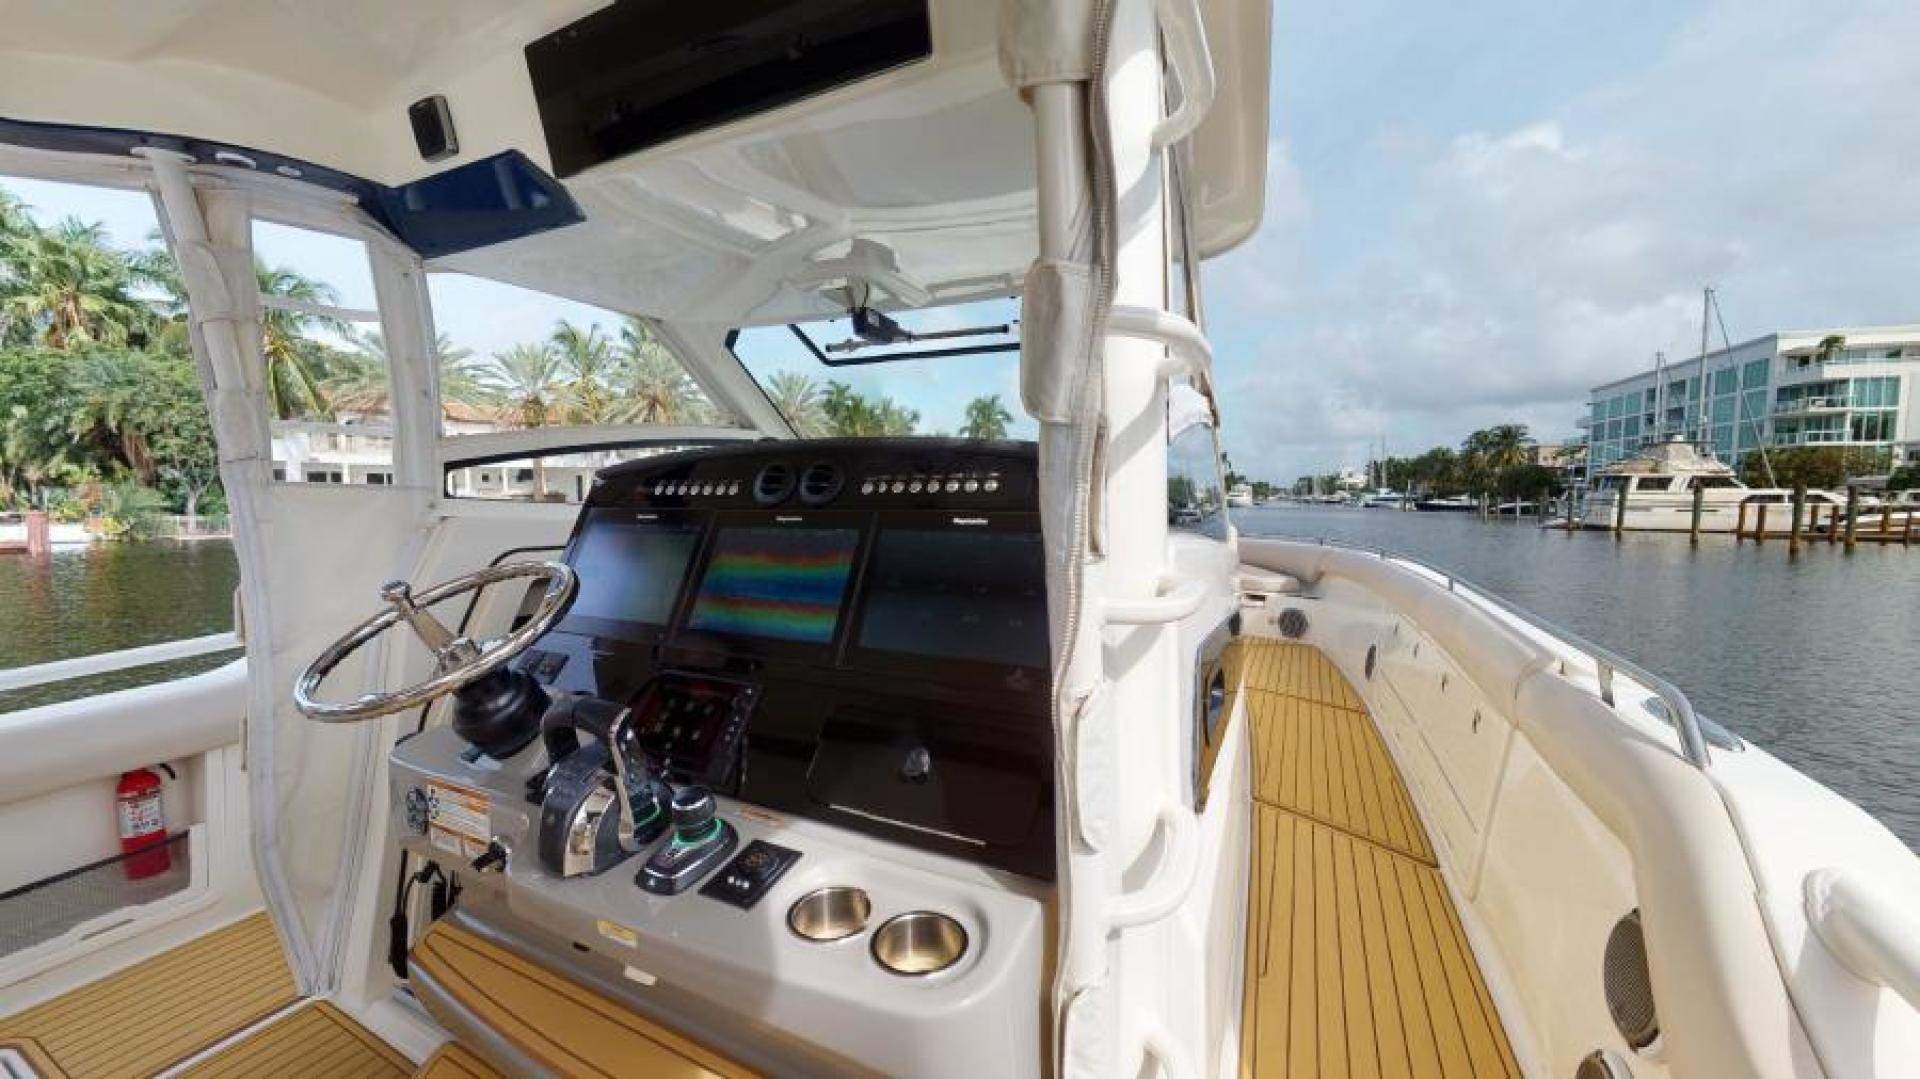 Boston Whaler-420 Outrage 2017-Boss Hawg Fort Lauderdale-Florida-United States-Helm-1513251 | Thumbnail